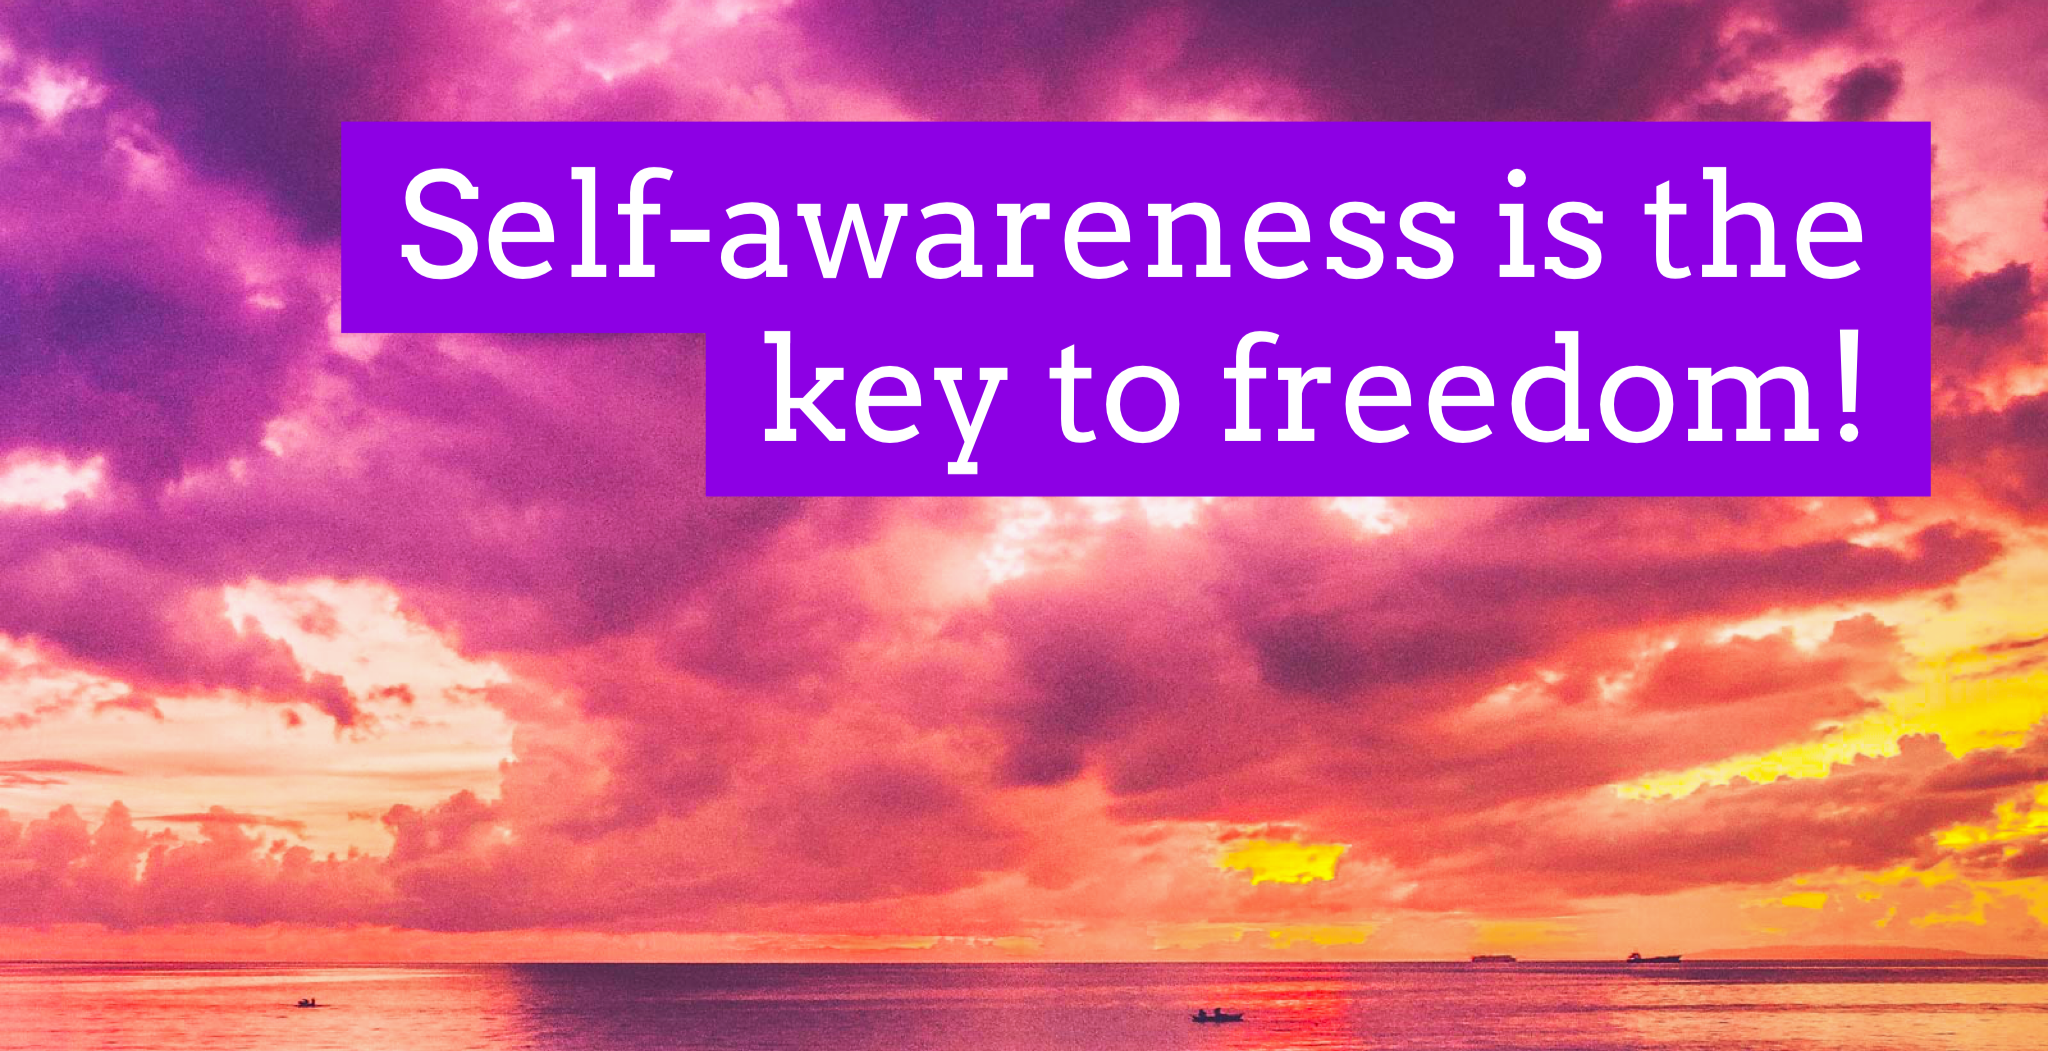 Self-awareness is the key to freedom!